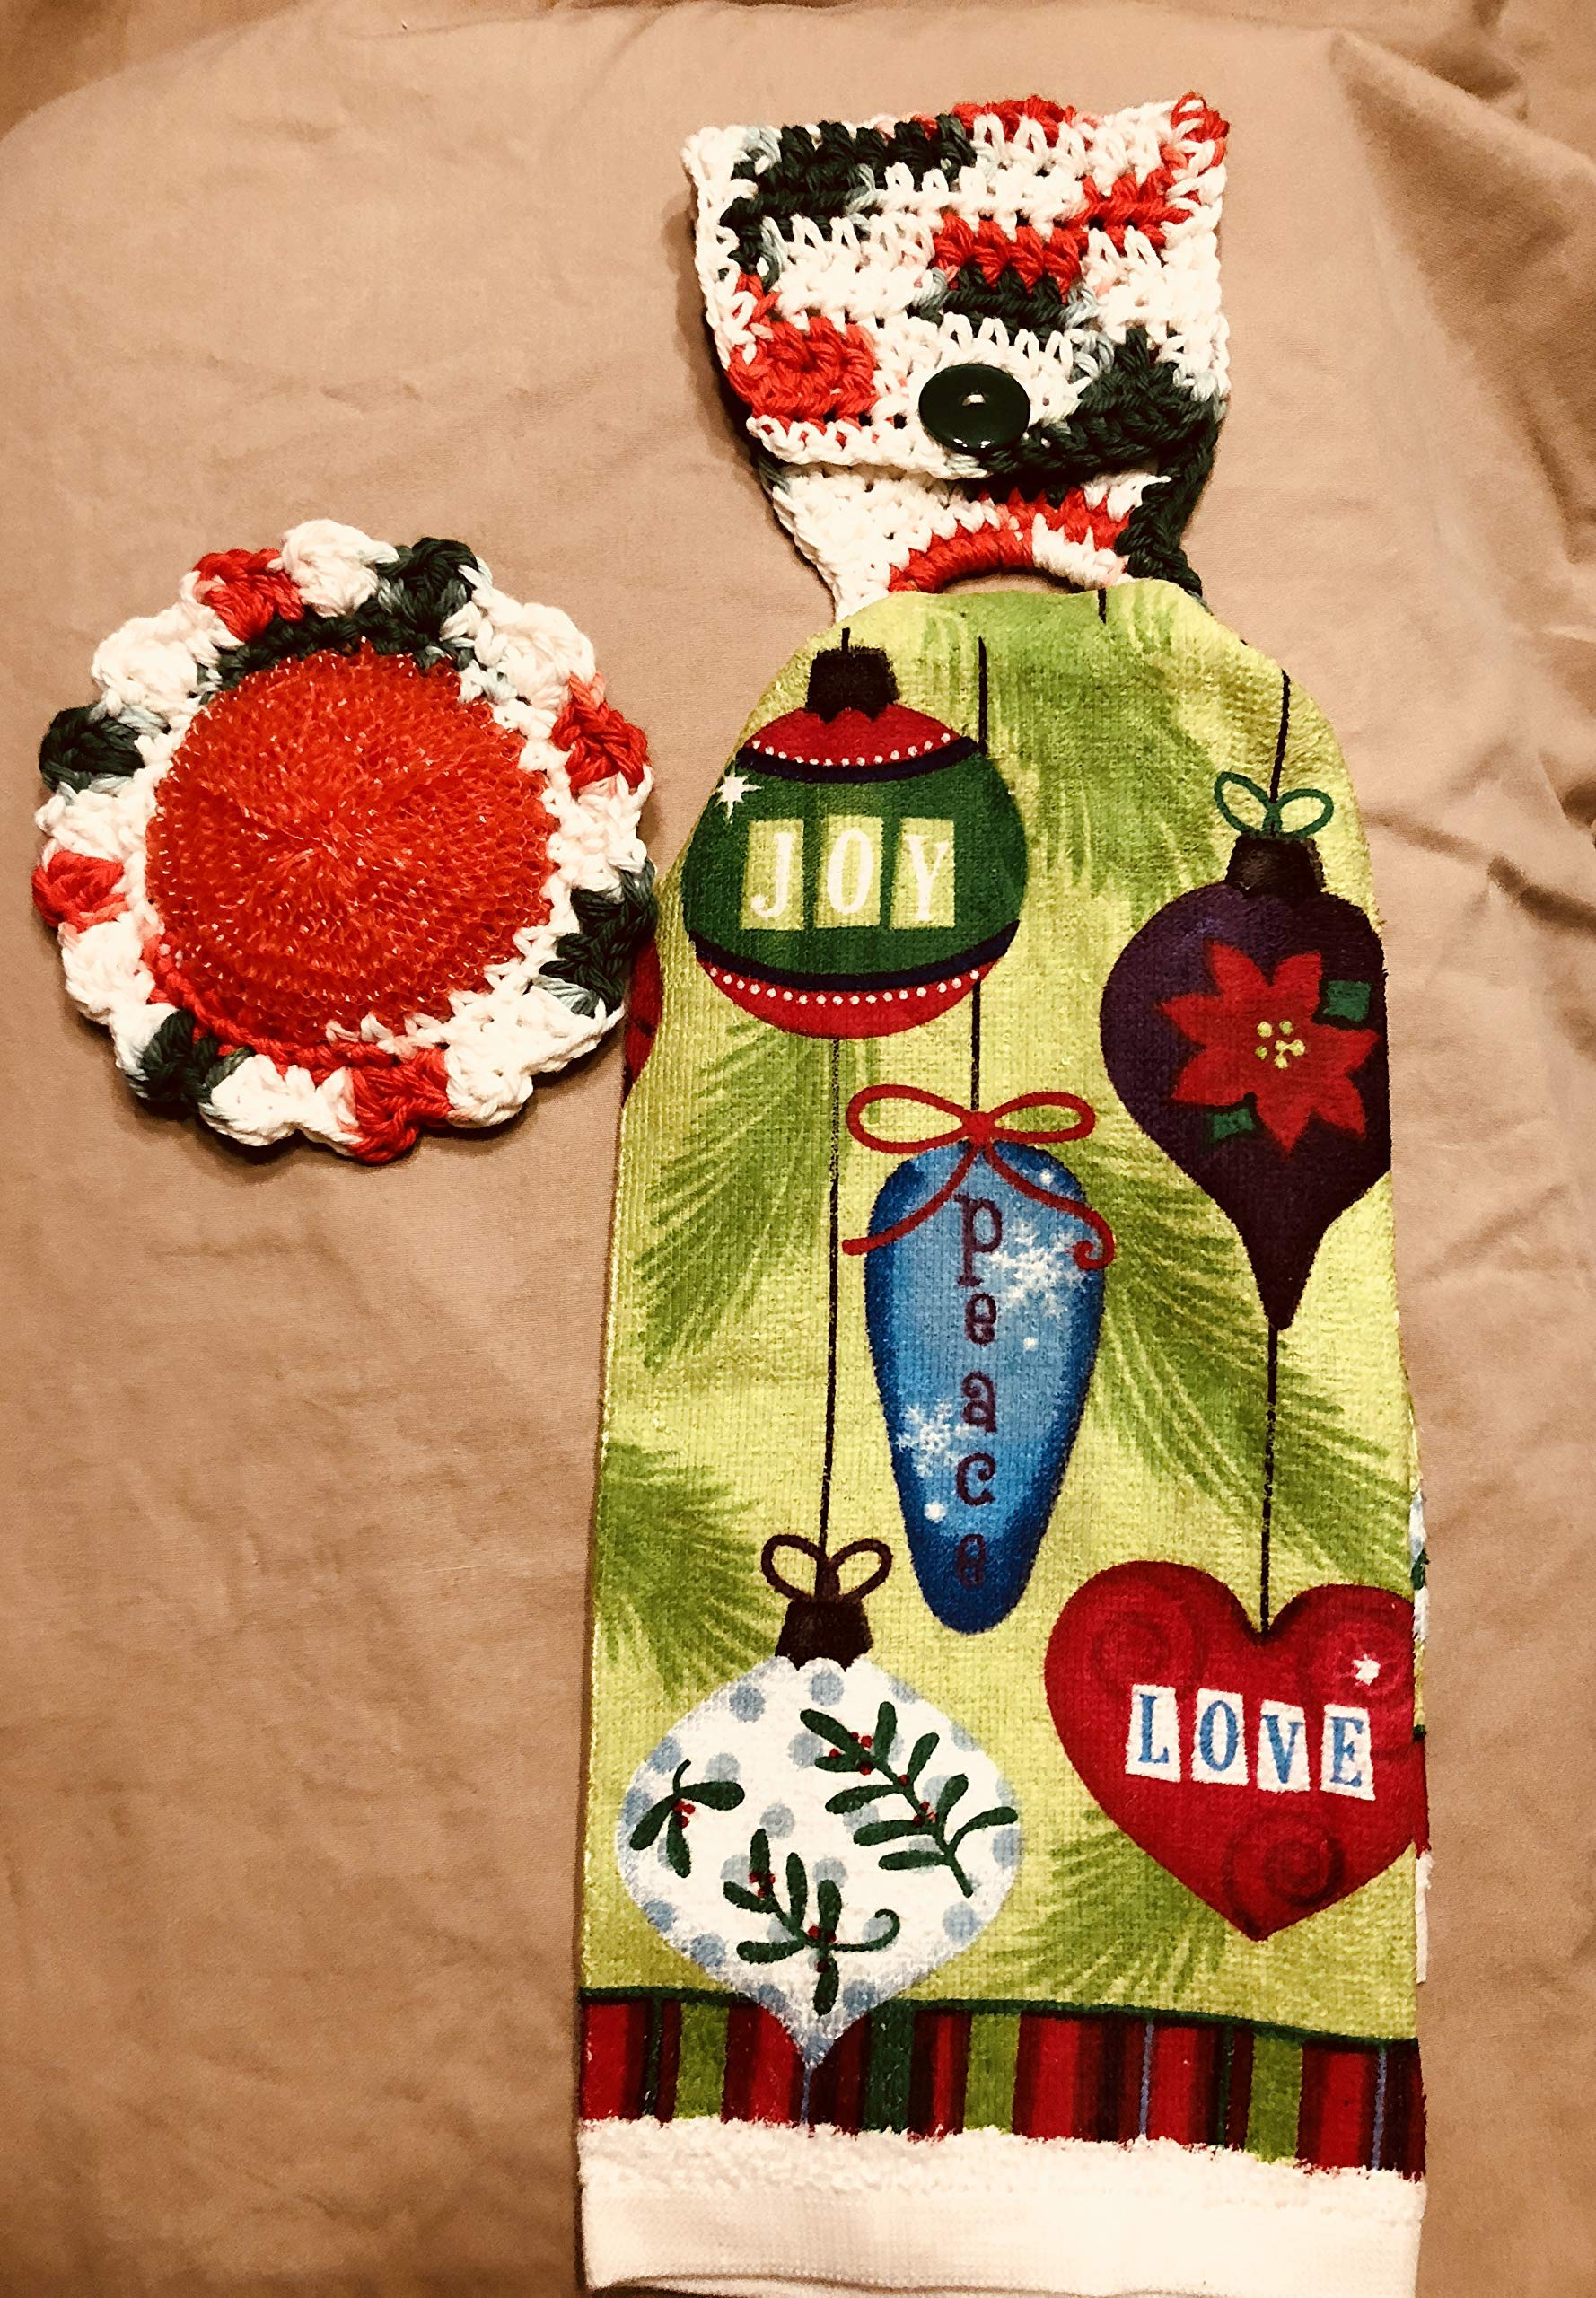 Free ship to USA - 3 piece set - Christmas Ornaments Balls - 1 CROCHET Plastic Scrubber, Towel holder & KITCHEN hand TOWEL light weight terry cloth - 100% cotton yarn red, white, green